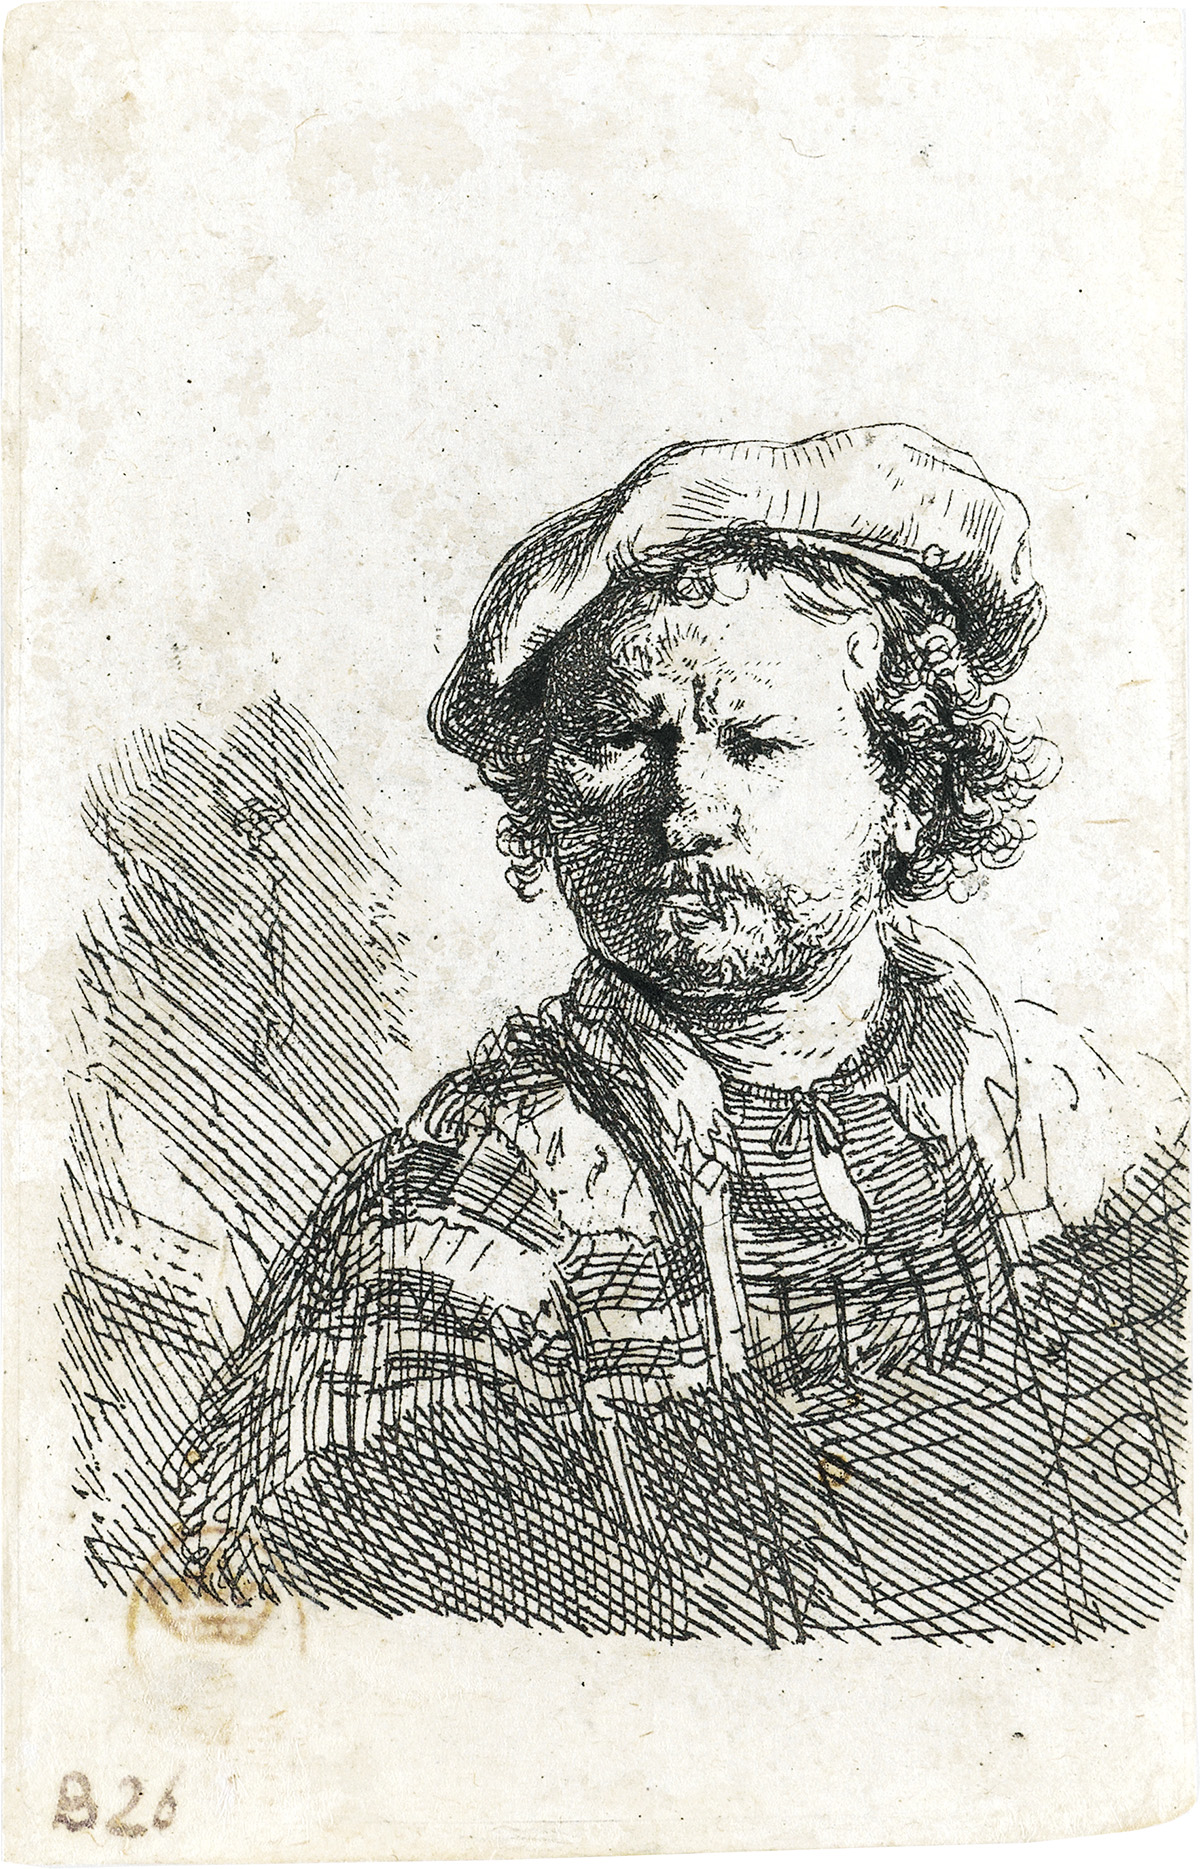 REMBRANDT-VAN-RIJN-Self-Portrait-in-a-Flat-Cap-and-Embroider